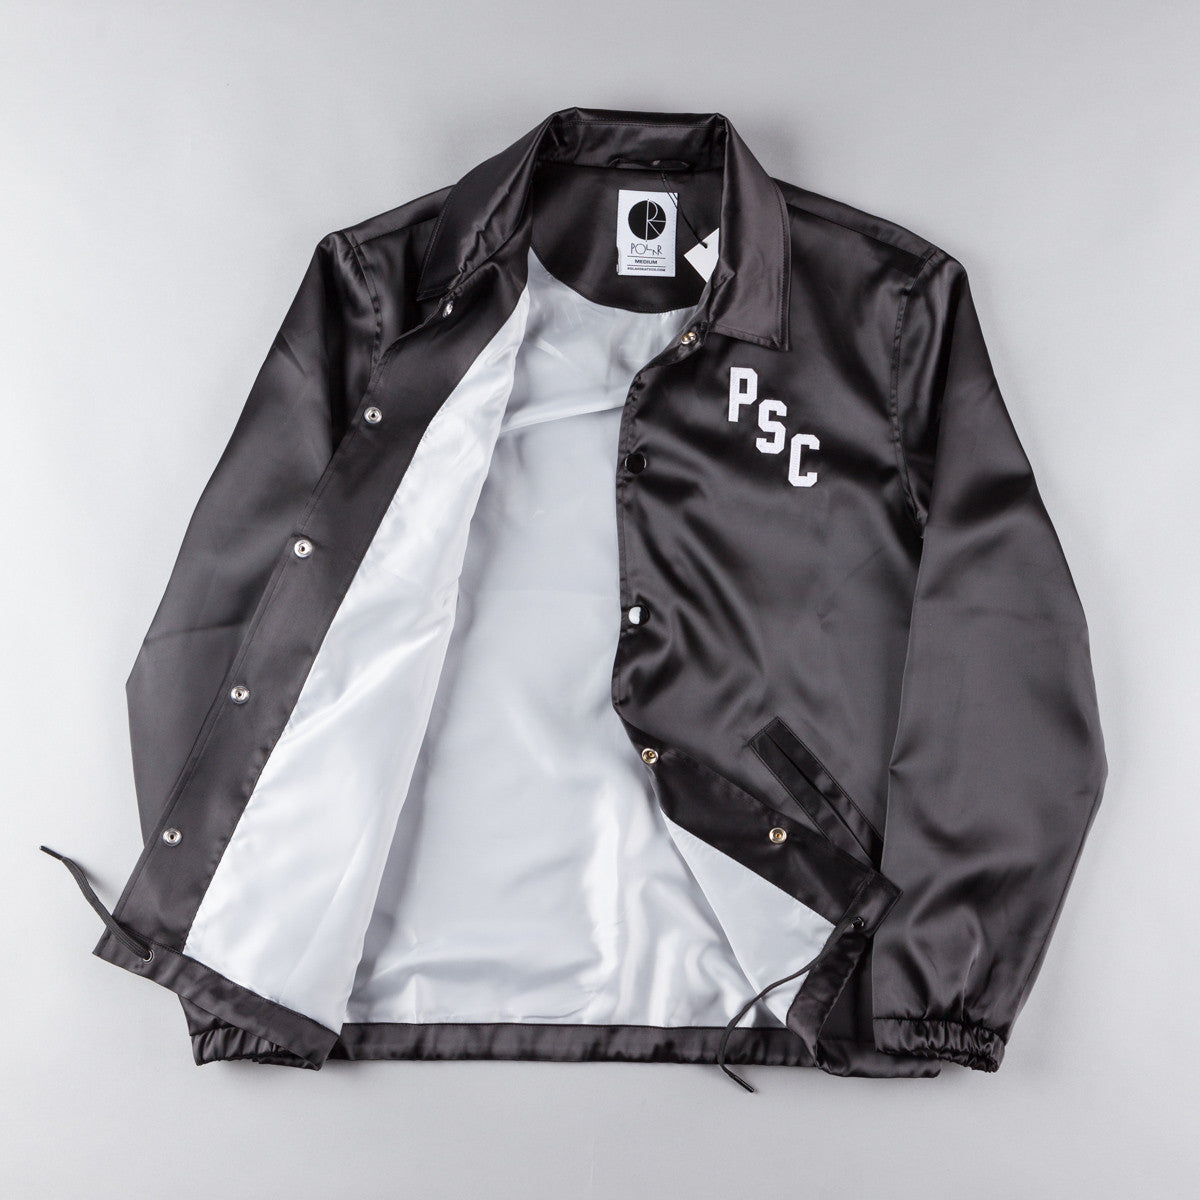 Polar Polar Skate Club Jacket - Black